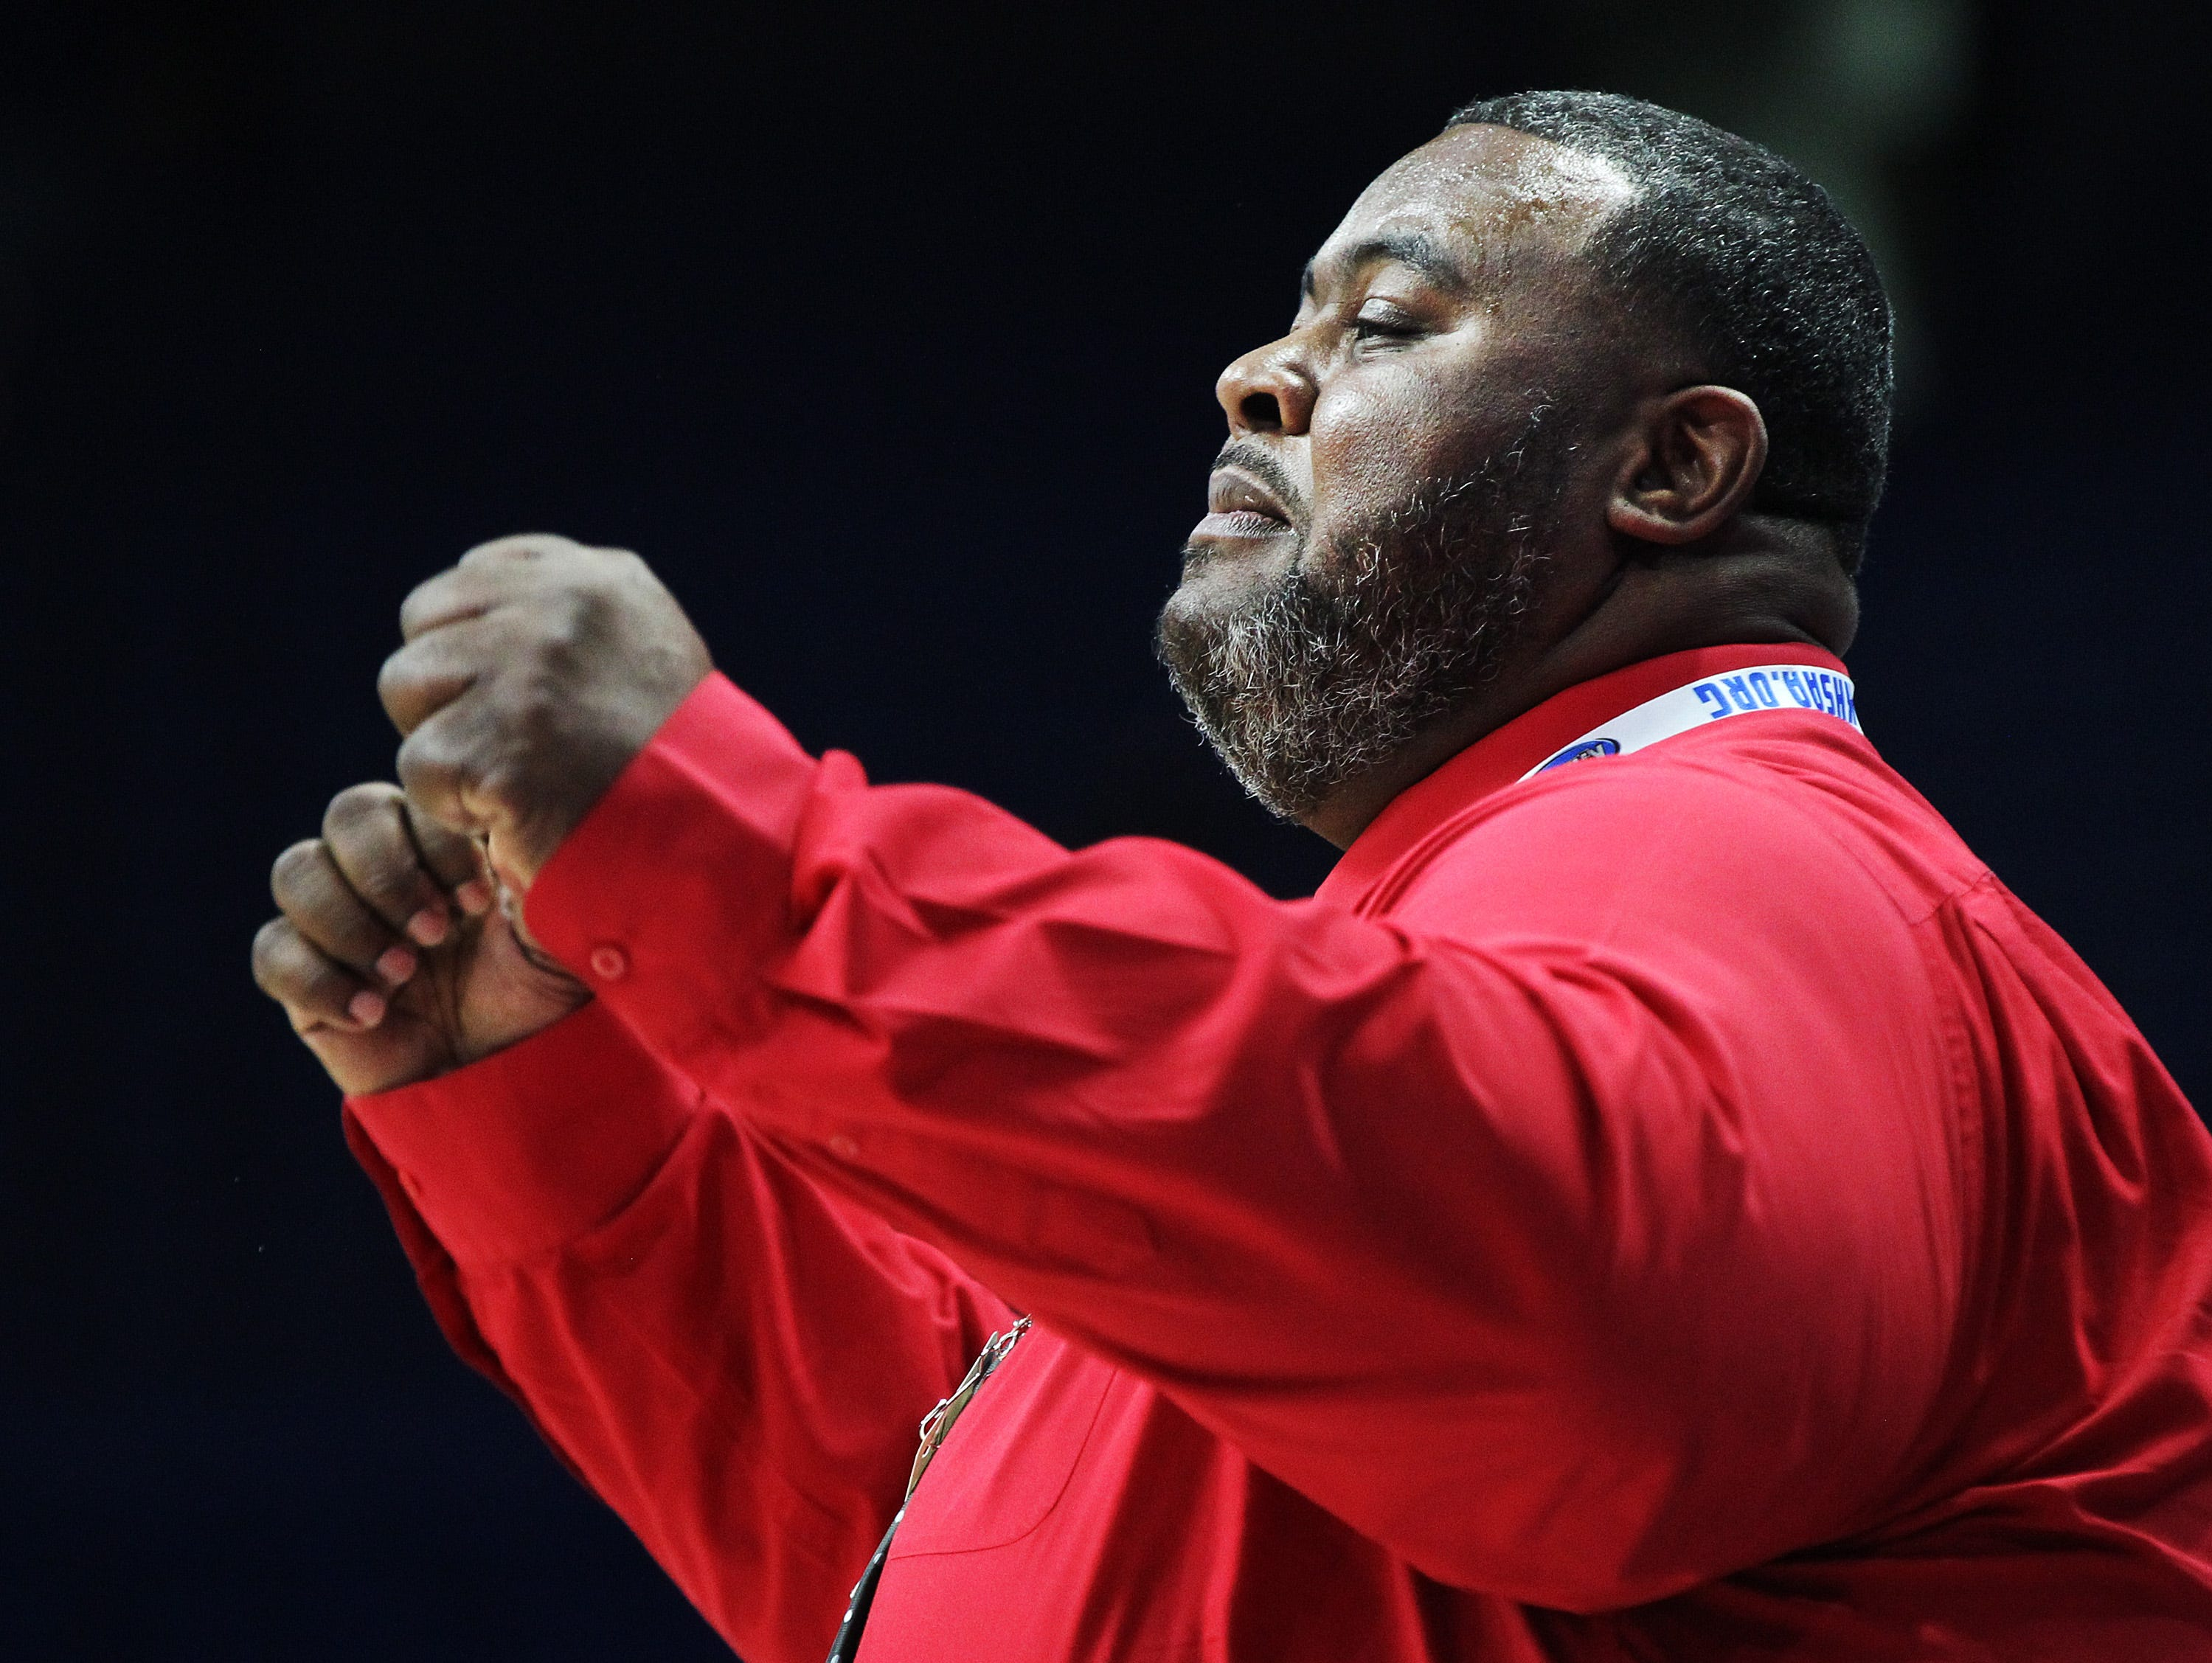 George Rogers Clark head coach Robbie Graham directs his team in their opening round game against Mercy at the KHSAA Girl's Sweet 16, Wednesday, March 13. George Rogers Clark won 65-64.